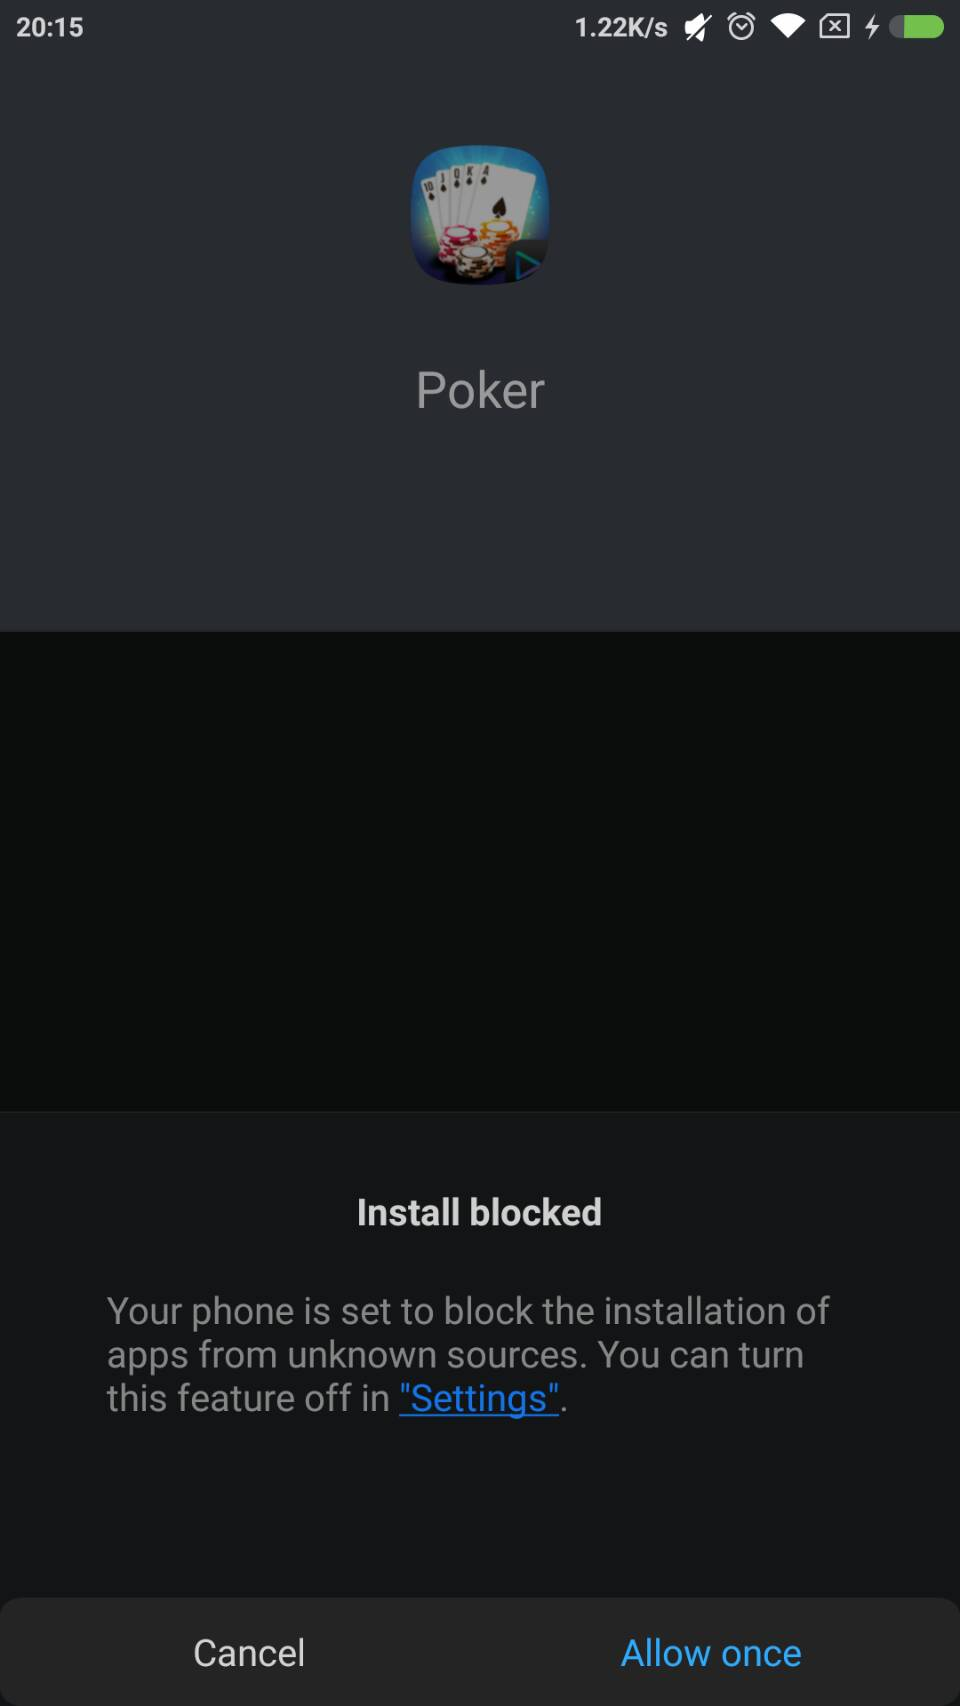 Cara Download Game Poker Macau303 - Allow Installation